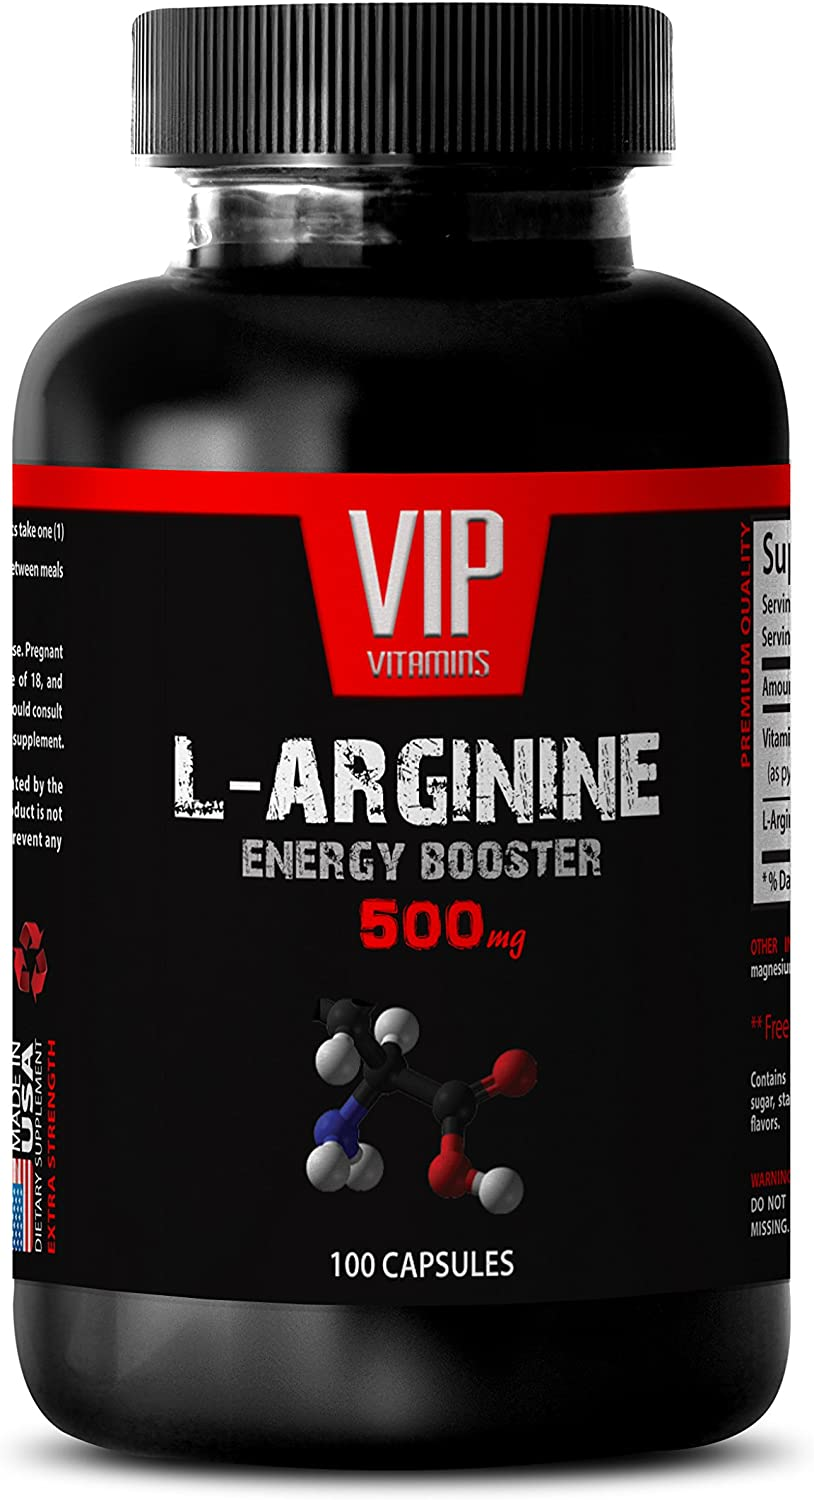 Cardiovascular Care - L-ARGININE Colorado Springs Mall Be super welcome 500MG and Musc Energy Natural